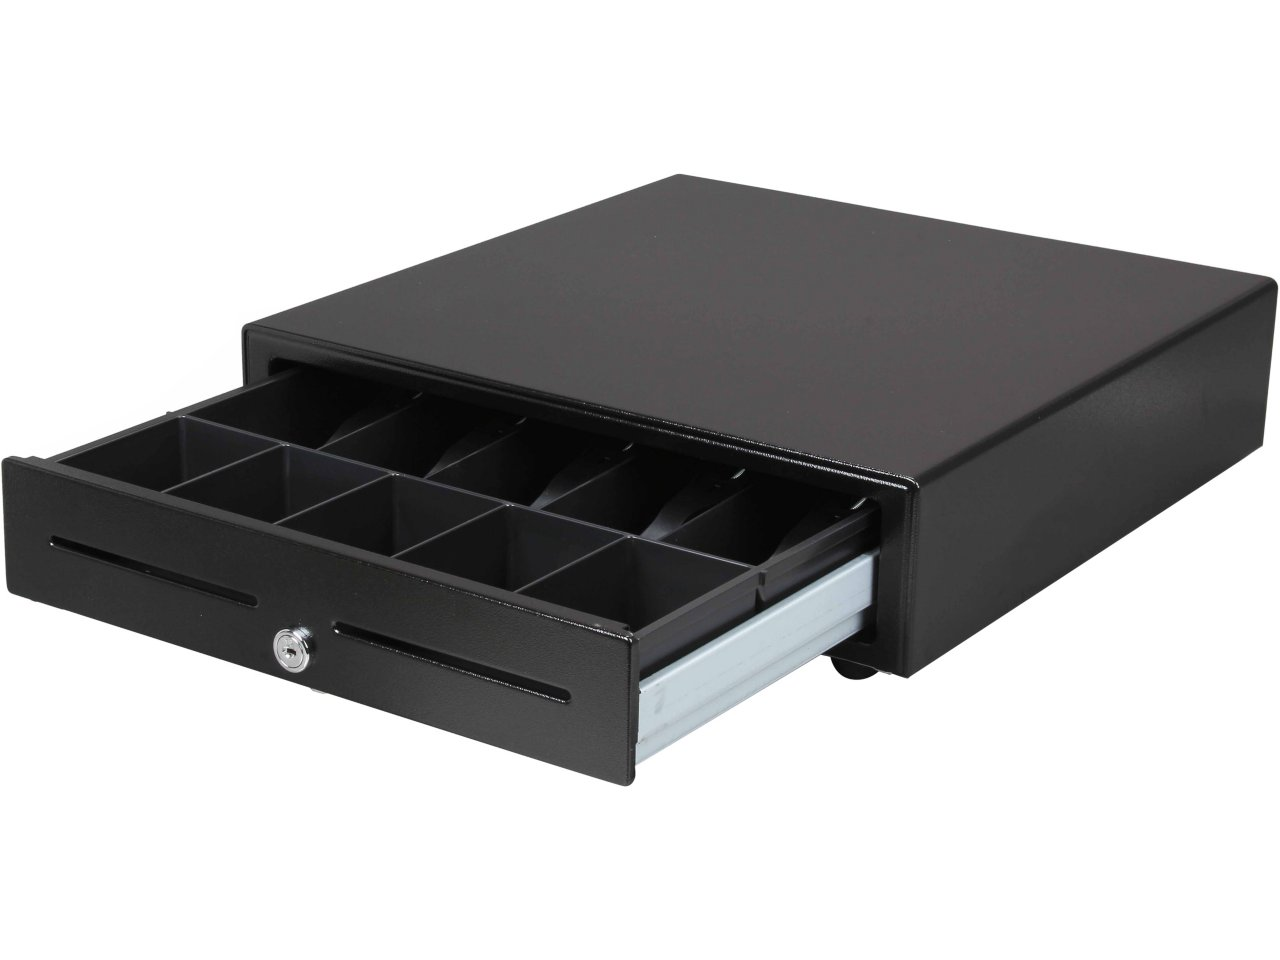 APG Cash Drawer - Black 16 x 16 Vasario Series, VB320-BL1616